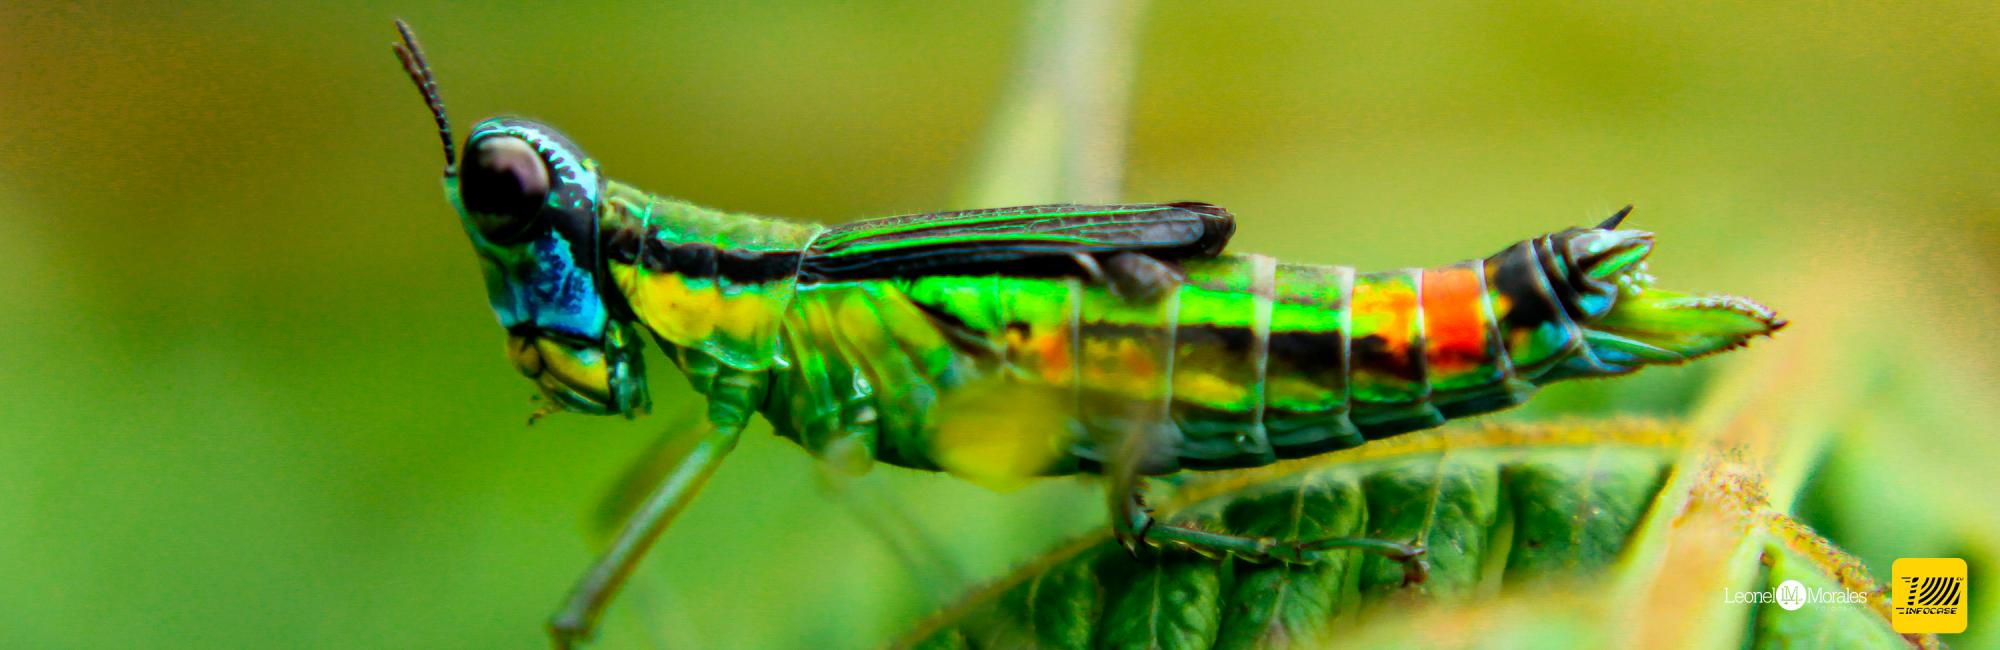 Love some Pretty Insects